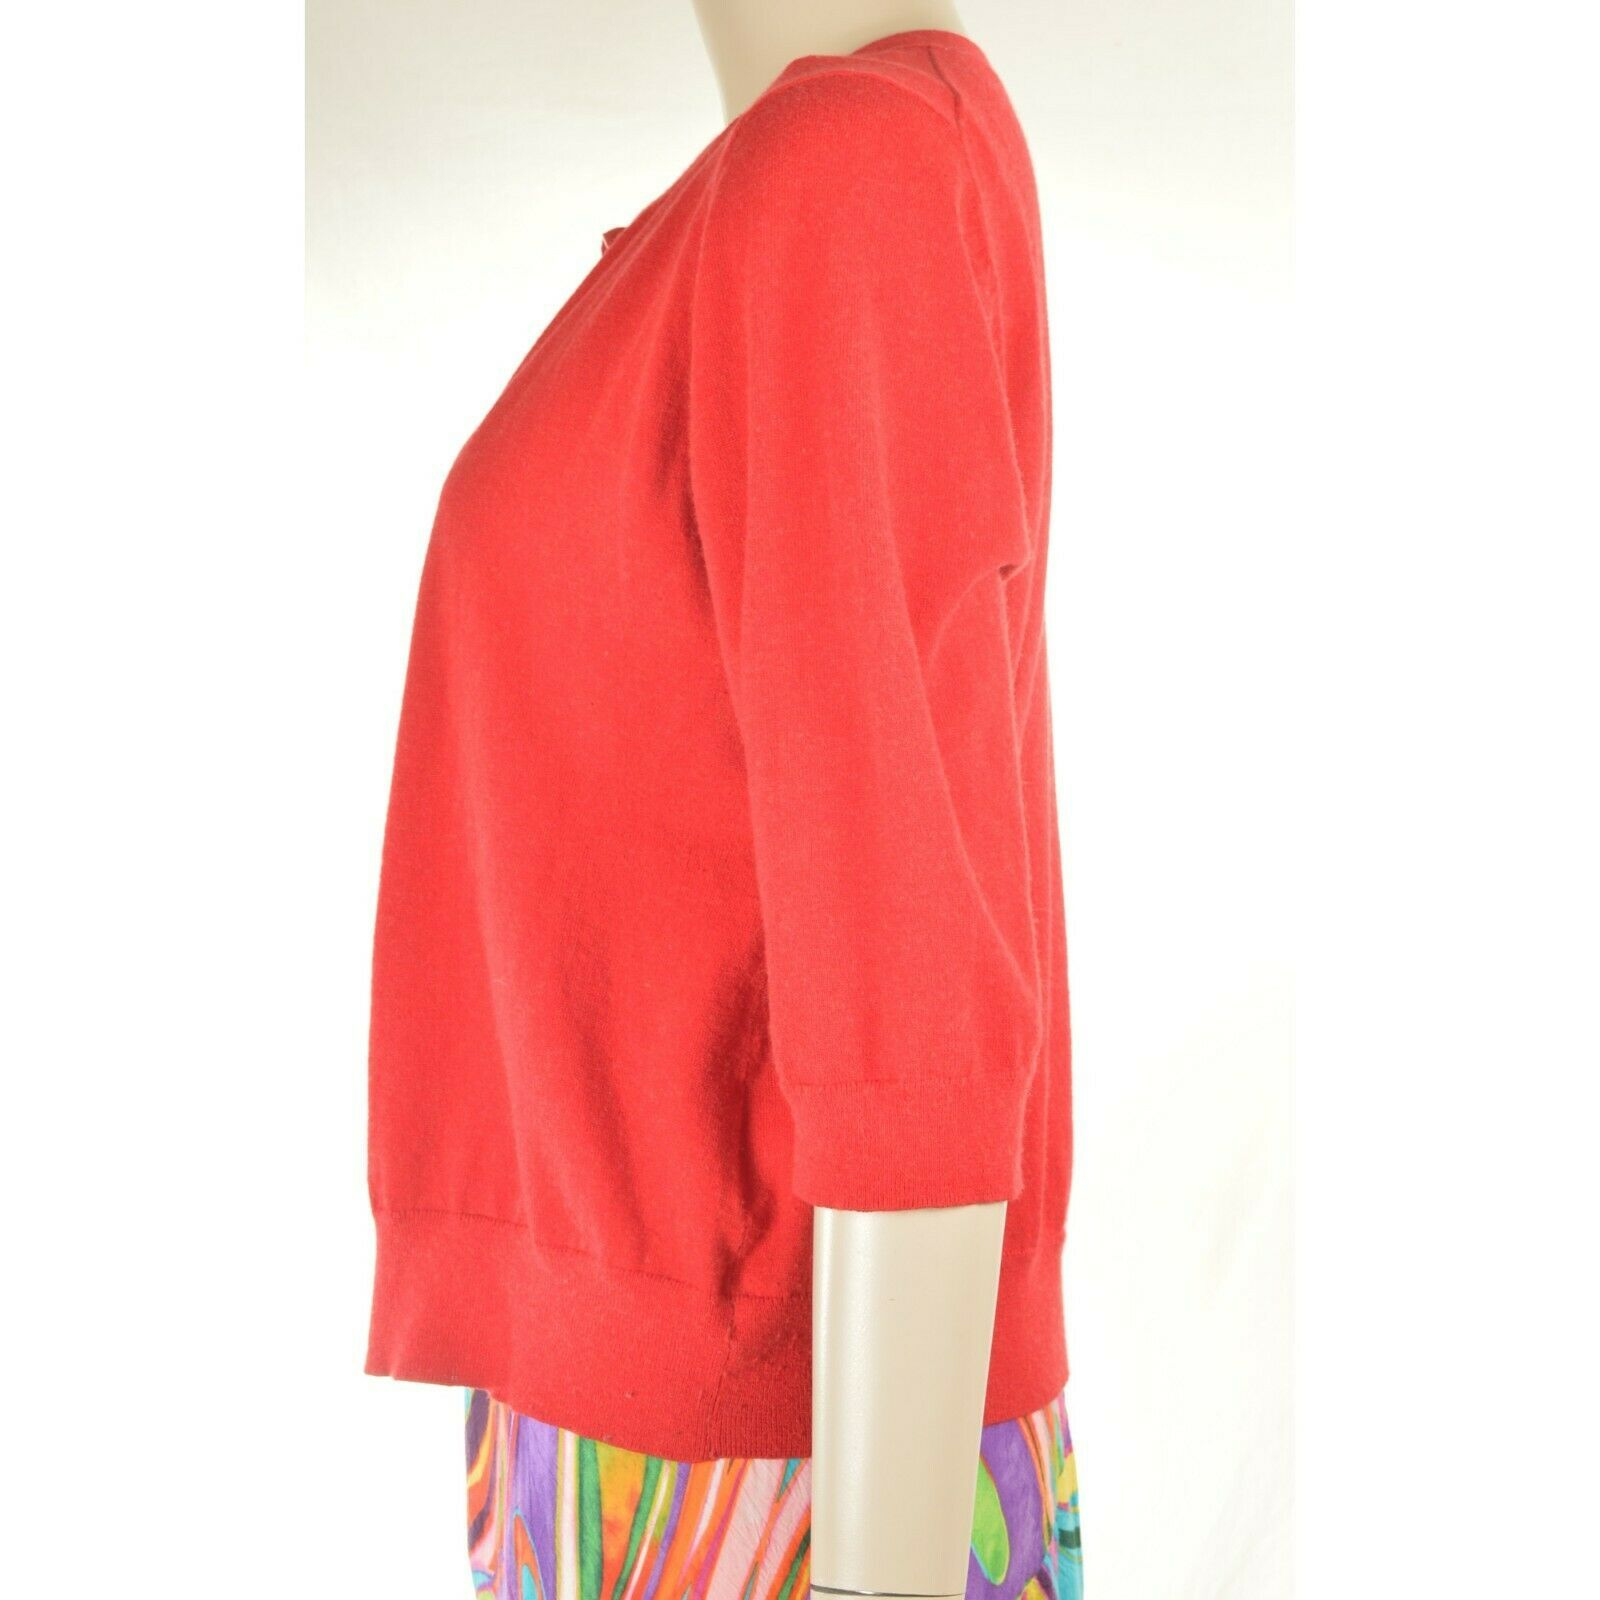 Eileen Fisher sweater M red cardigan 3/4 sleeves organic cotton cashmere blend image 11